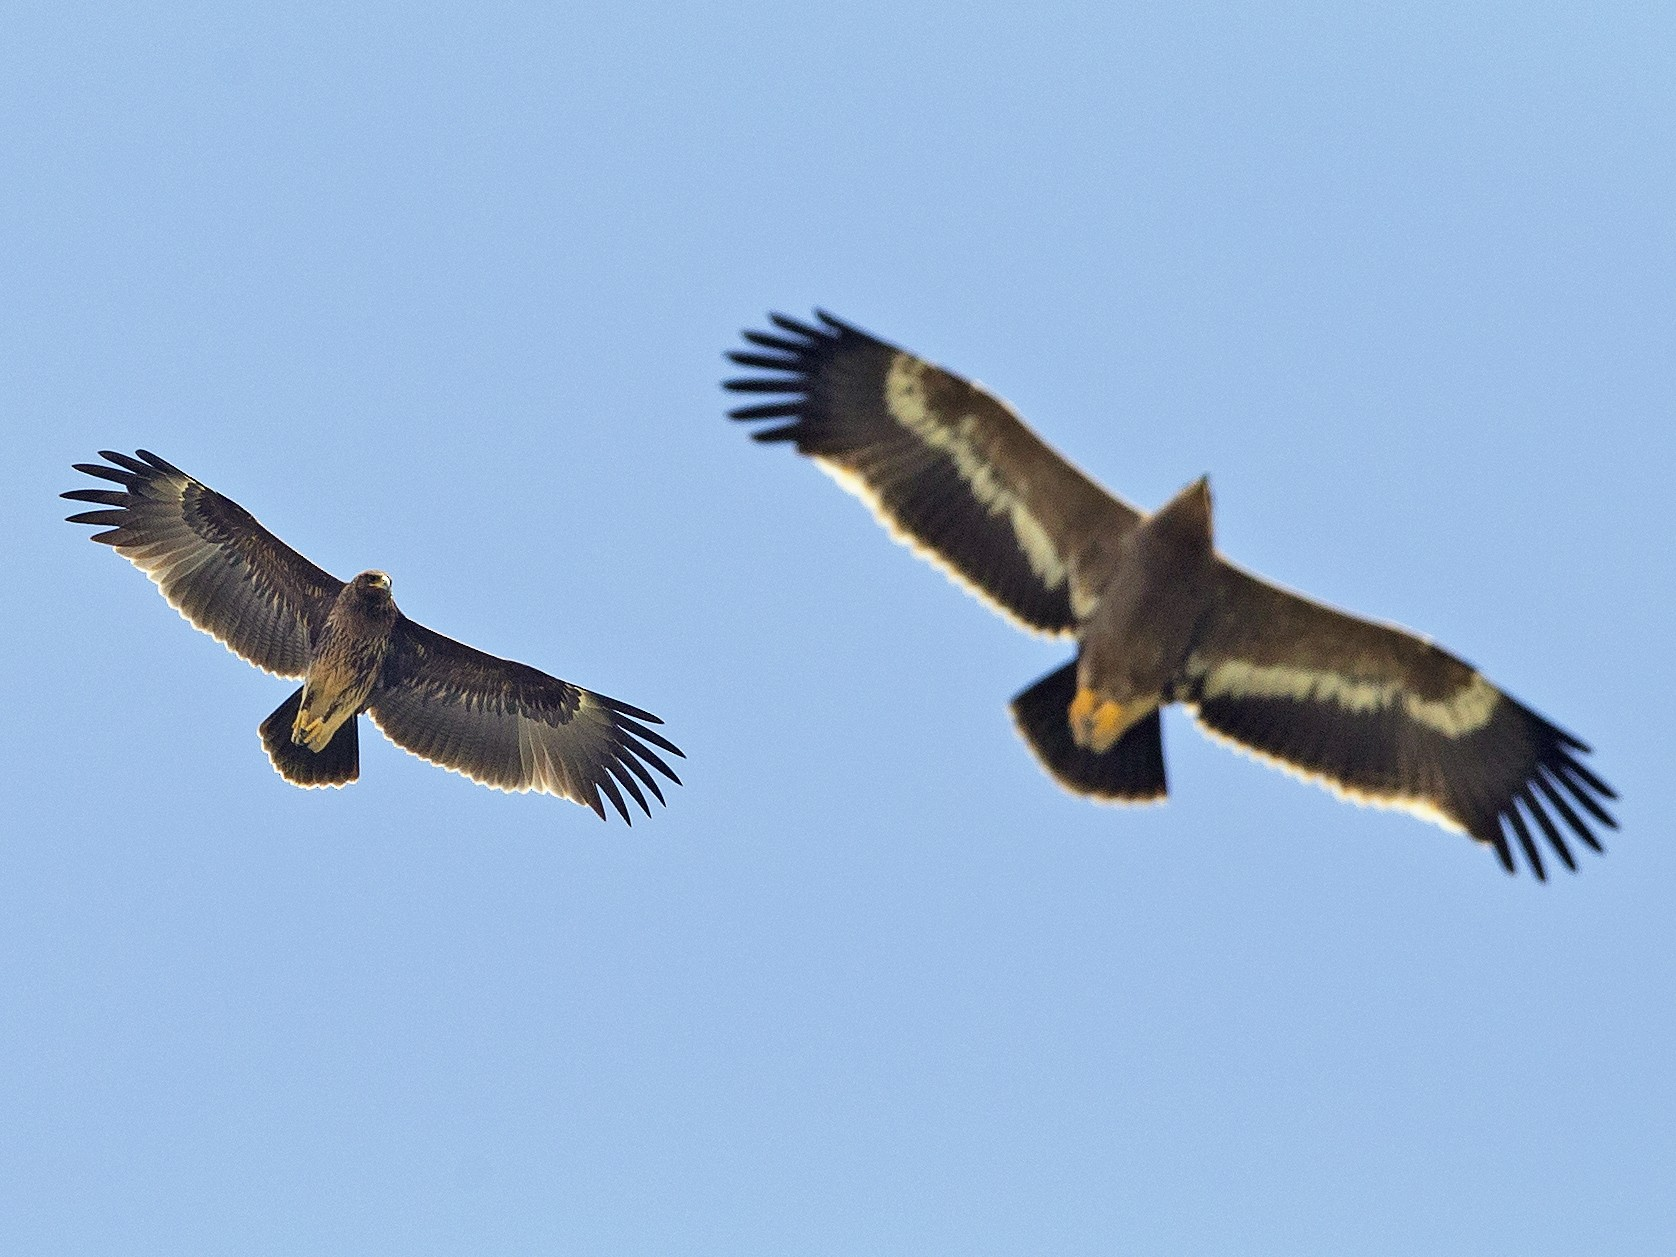 Greater Spotted Eagle - Omar alshaheen